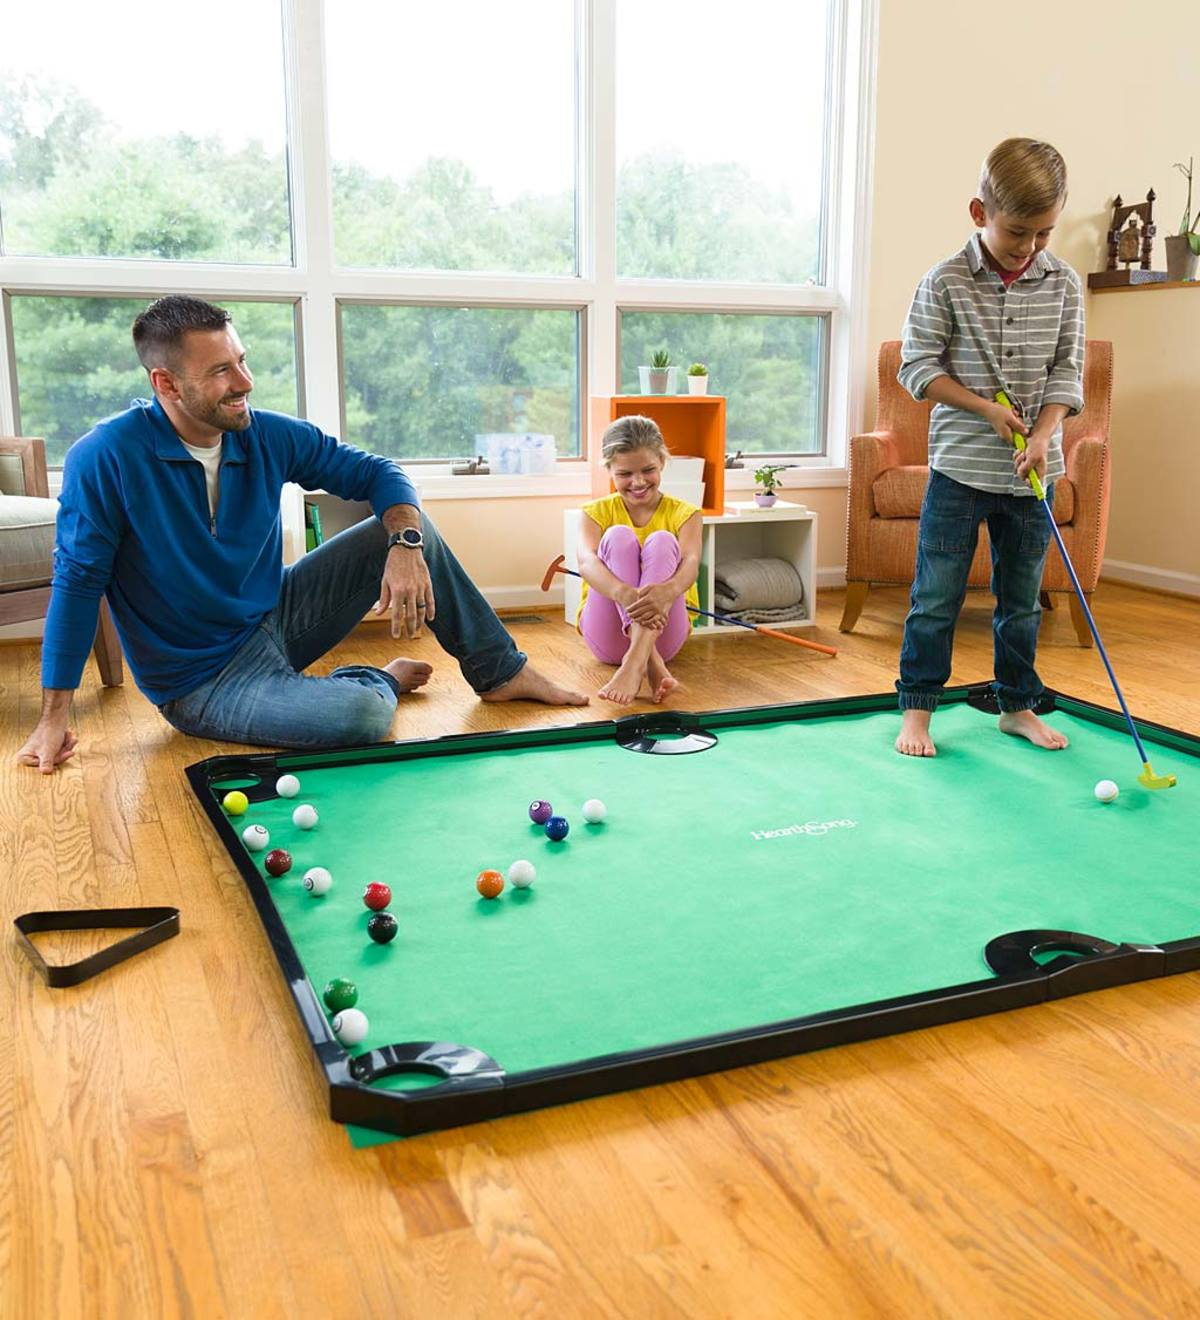 79a1e4c5d287 Golf Pool Indoor Family Game | Active Games | Outdoor Play ...